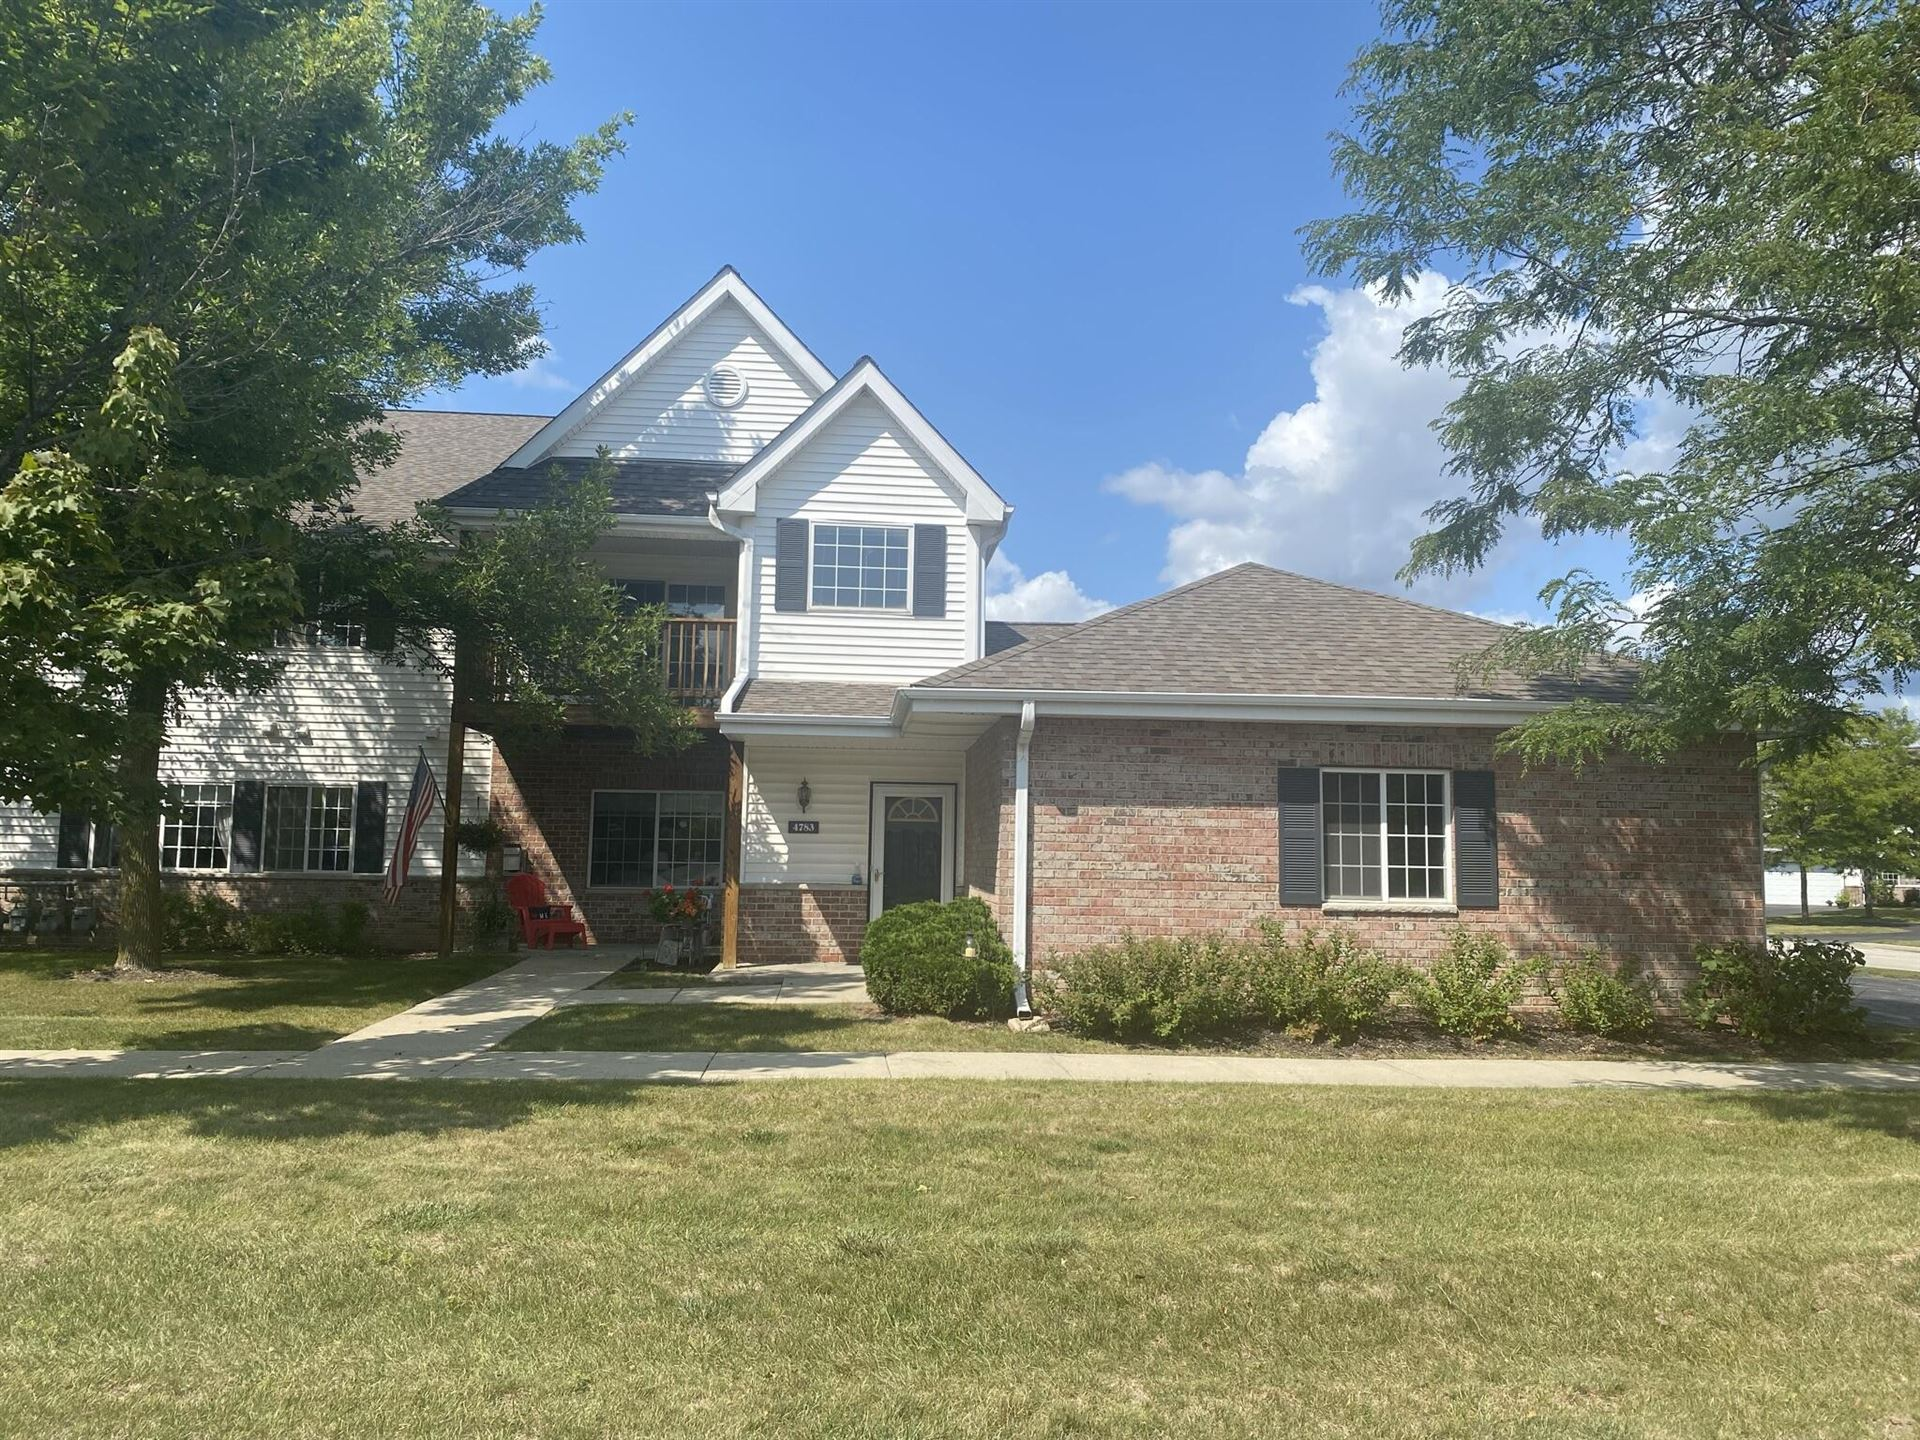 Photo for 4783 S Forest Point Blvd, New Berlin, WI 53151 (MLS # 1763782)